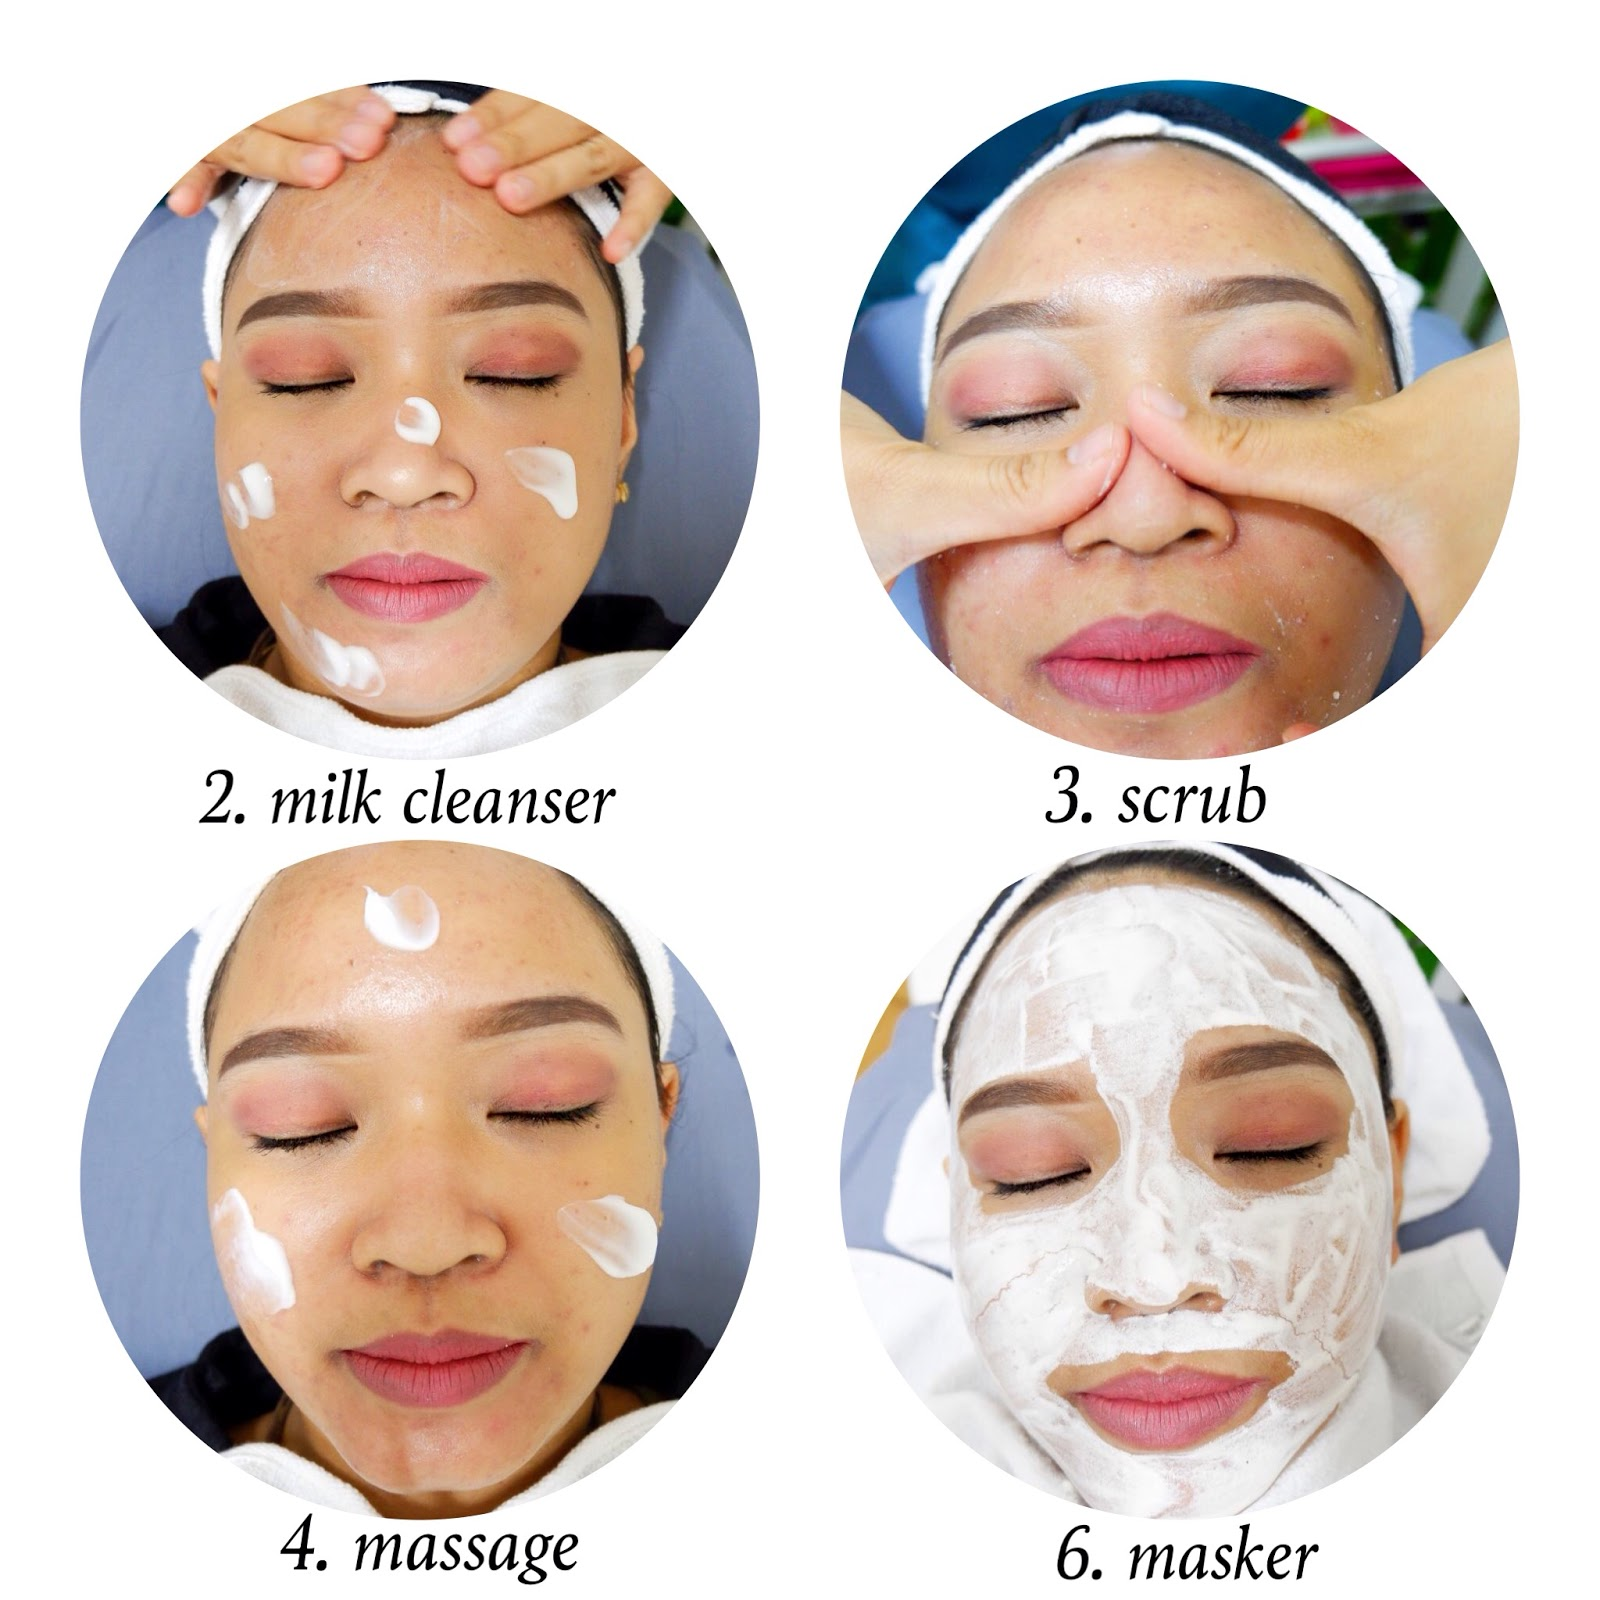 REVIEW DNI SKIN CENTRE TREATMENT LASER FACE REJUVENATION DAN FACIAL DETOX CABANG SESETAN